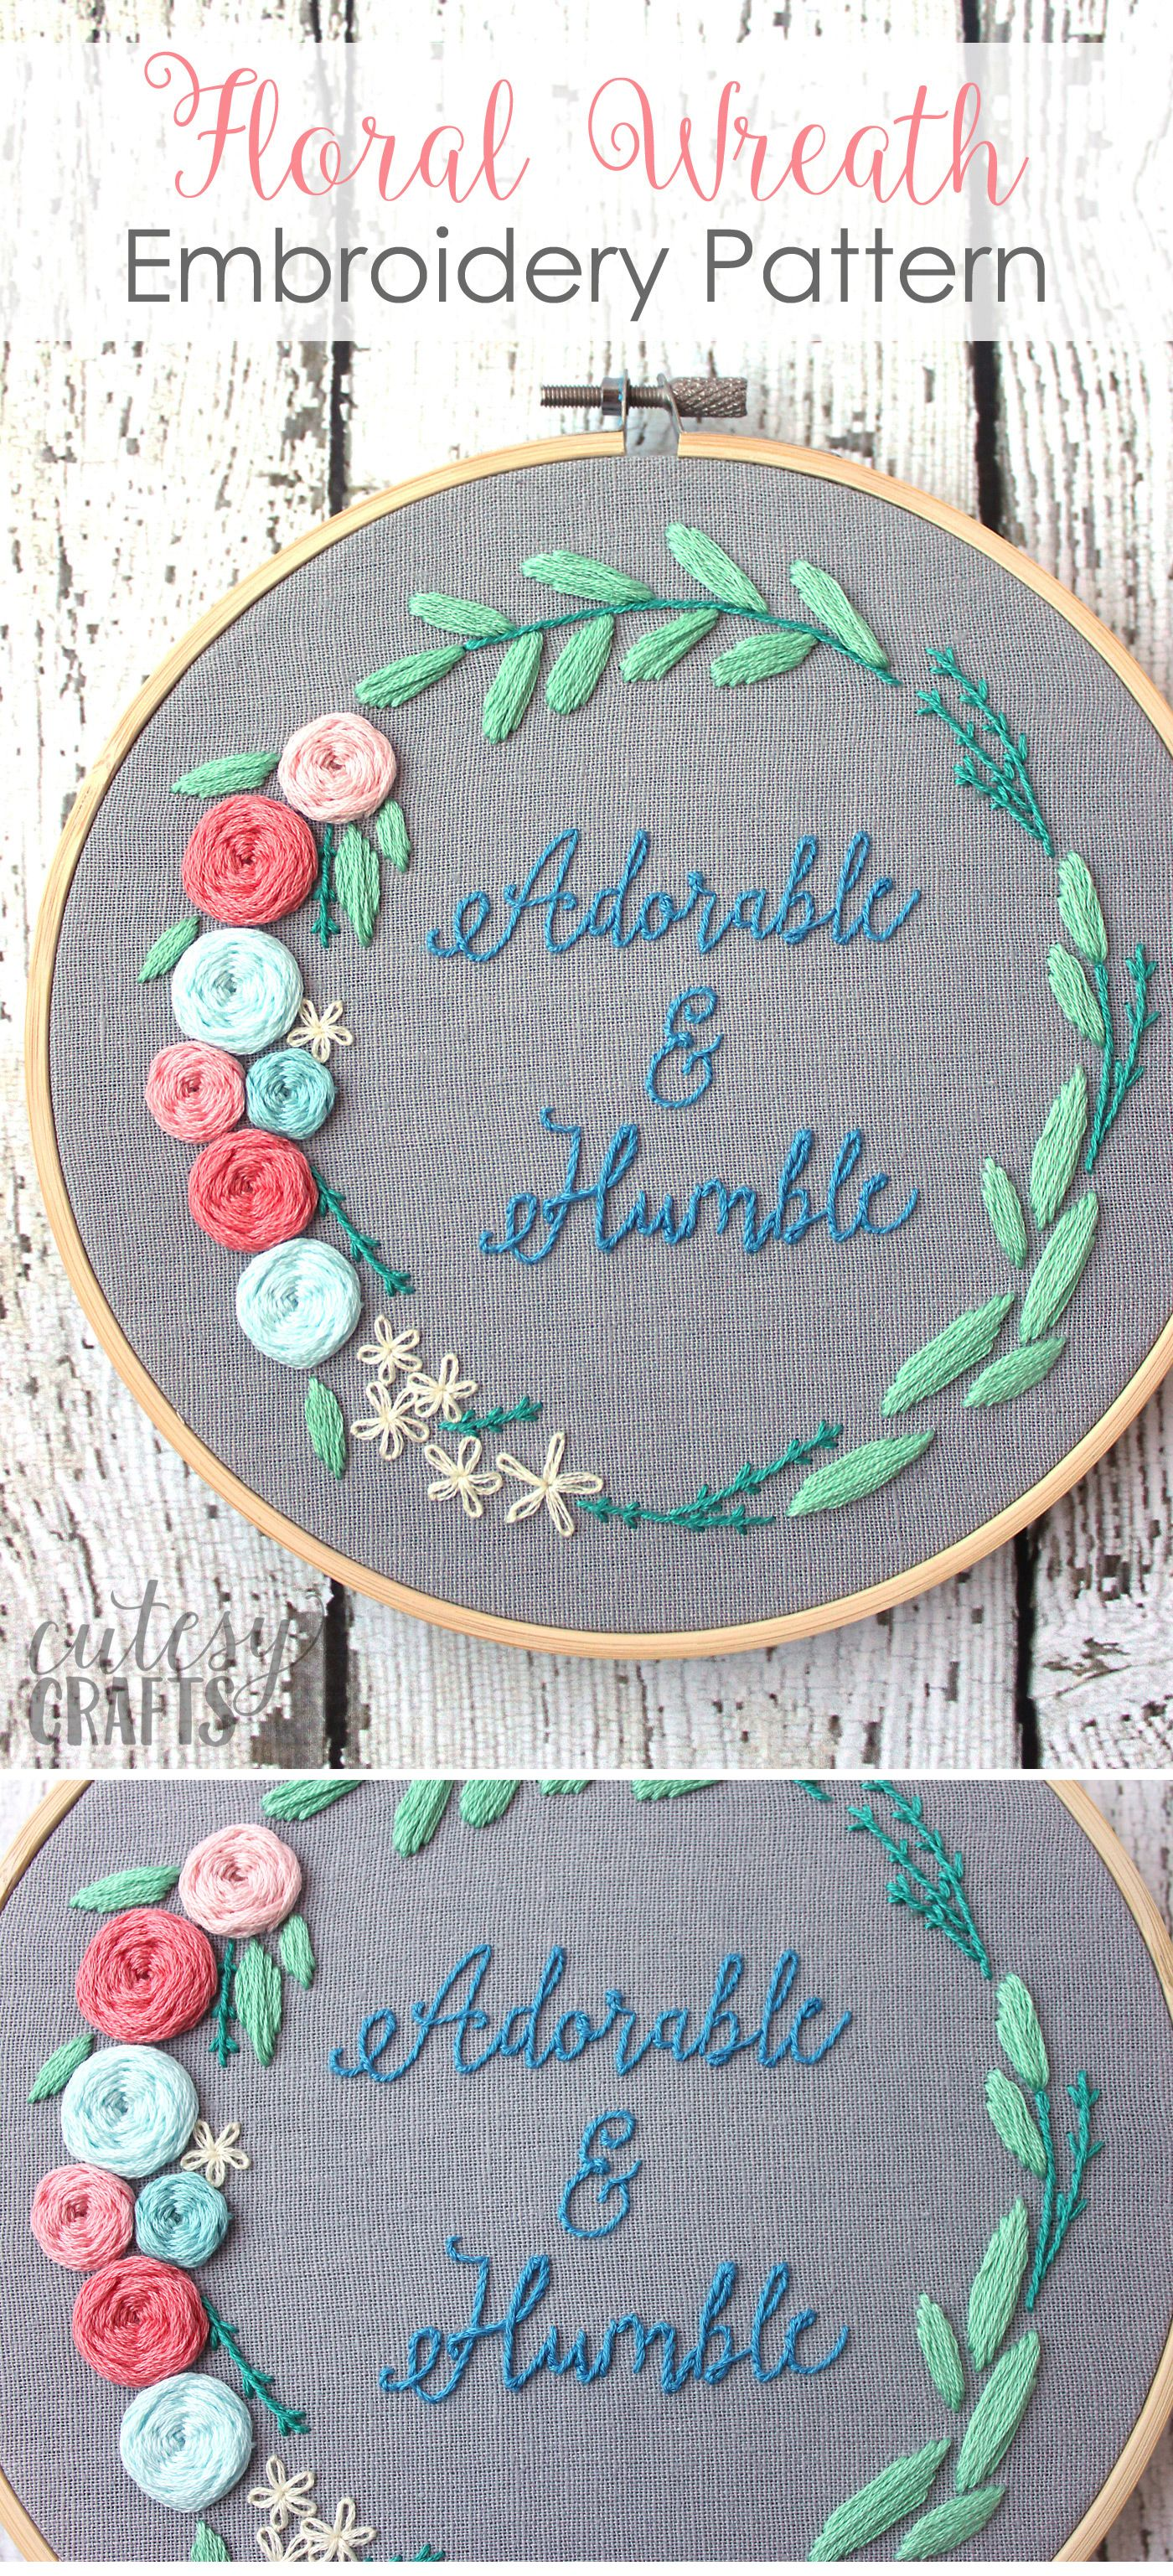 Adorable and humble quote embroidery pattern a gorgeous floral